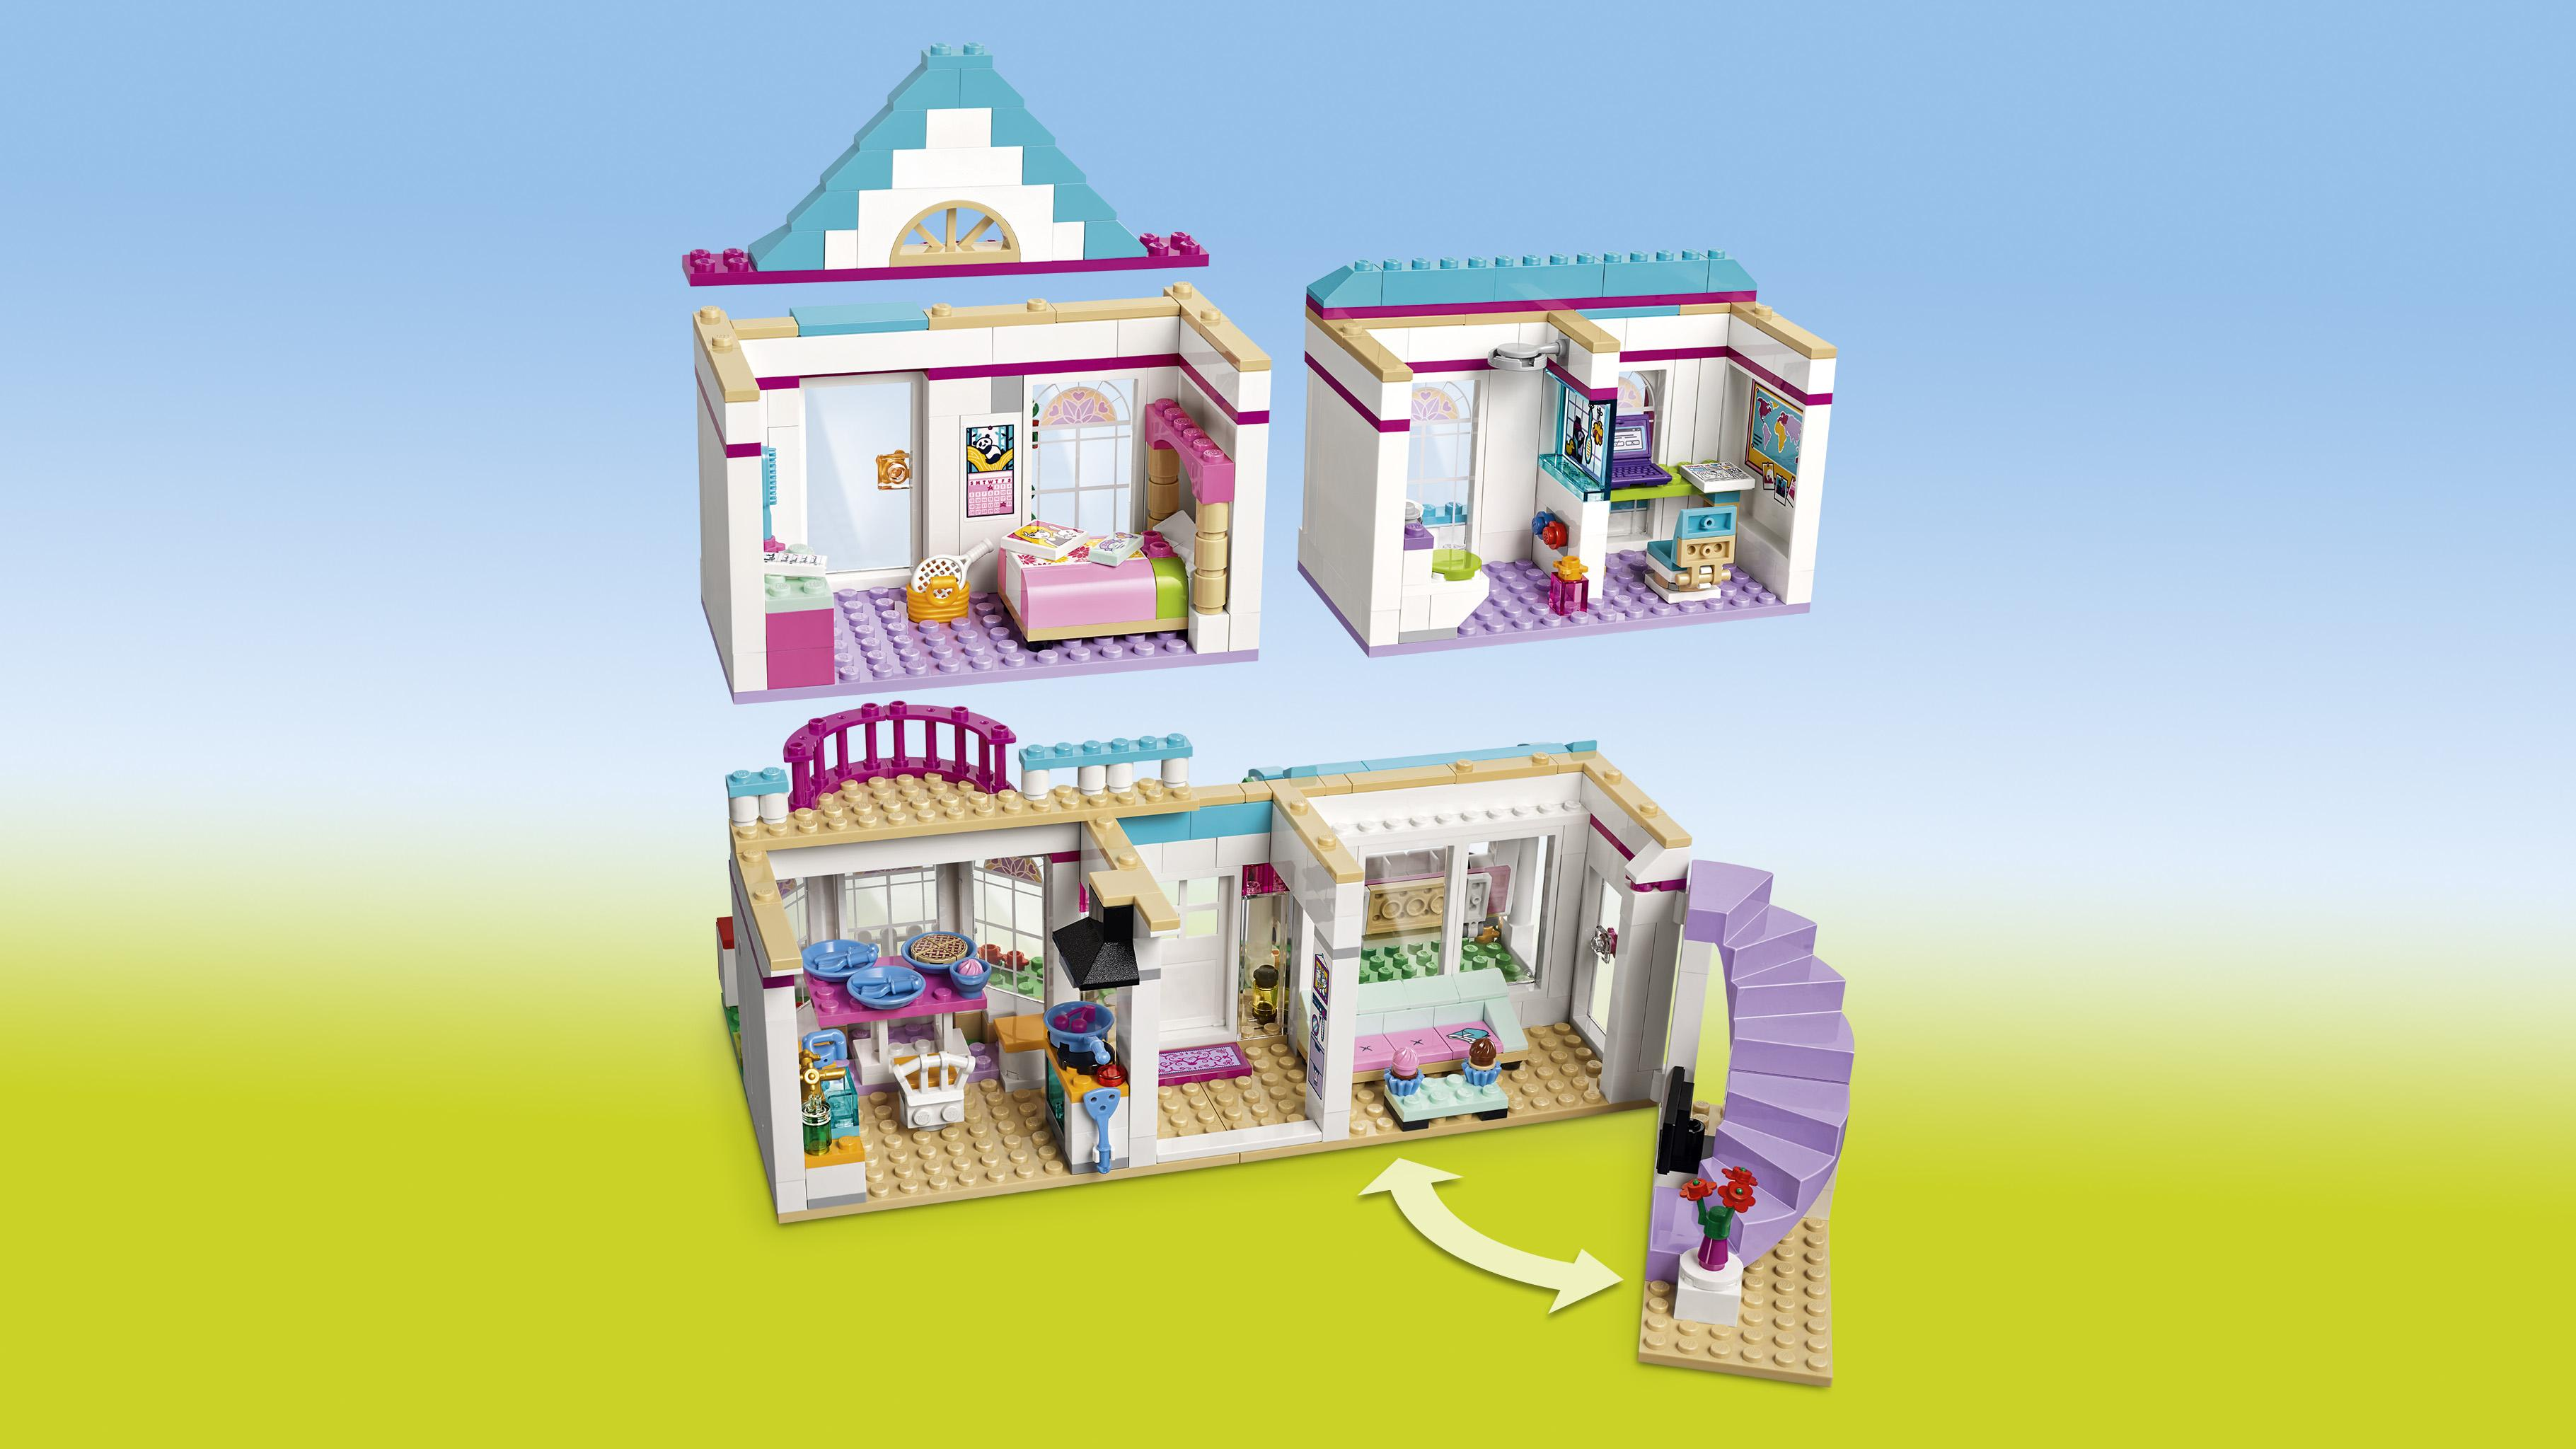 Lego friends stephanie 39 s house 41314 toy for 6 for Modele maison lego